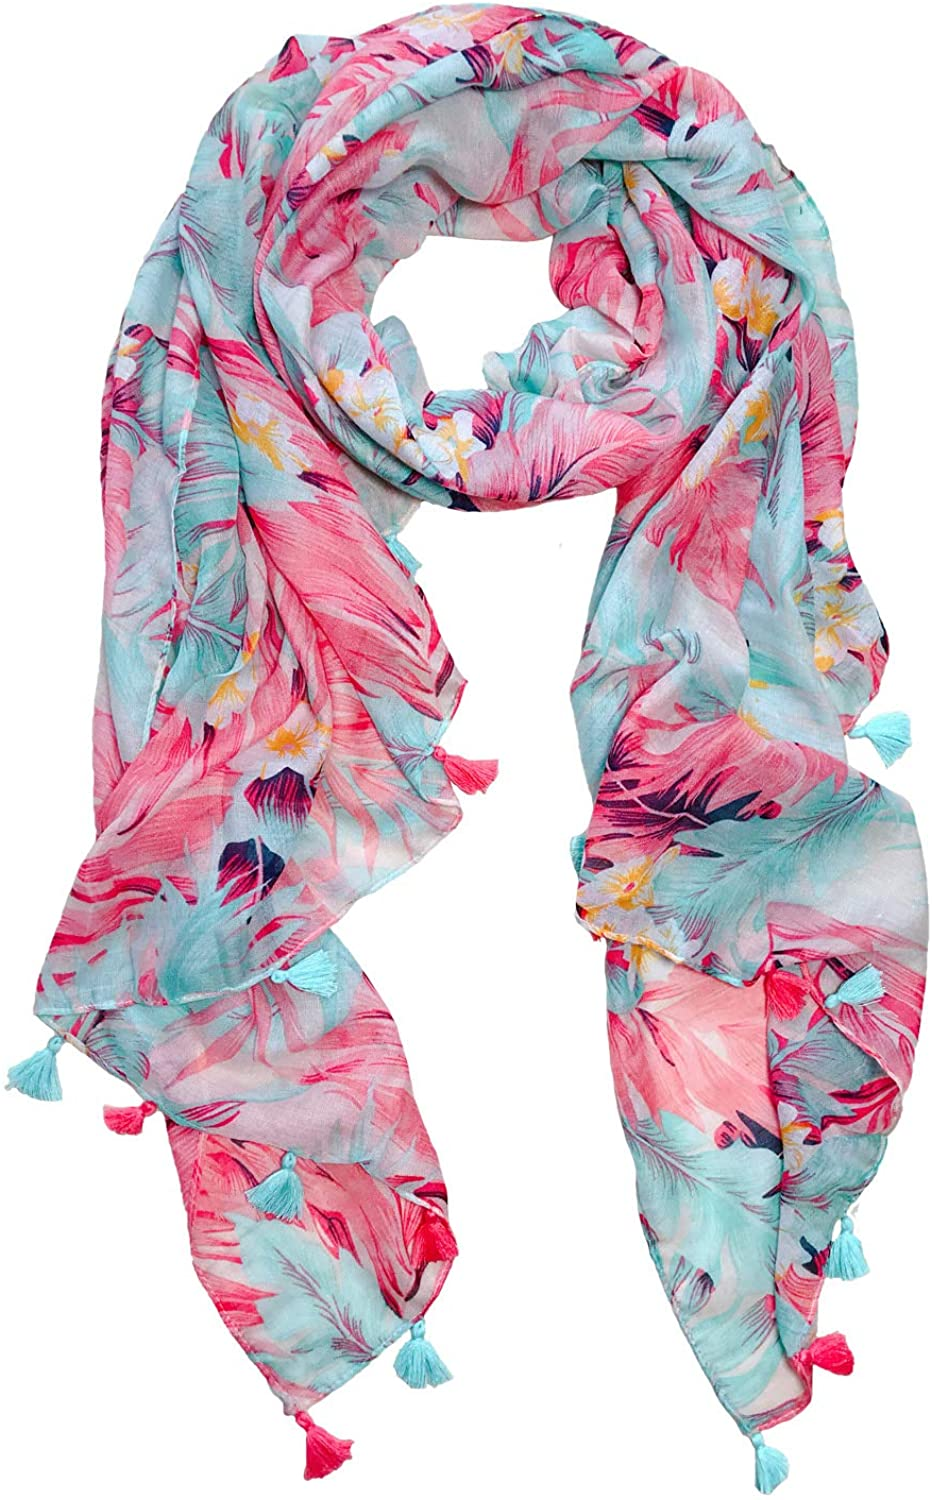 Lightweight Scarves for Women Floral Flower Print Spring Winter Fashion Wraps With Tassel